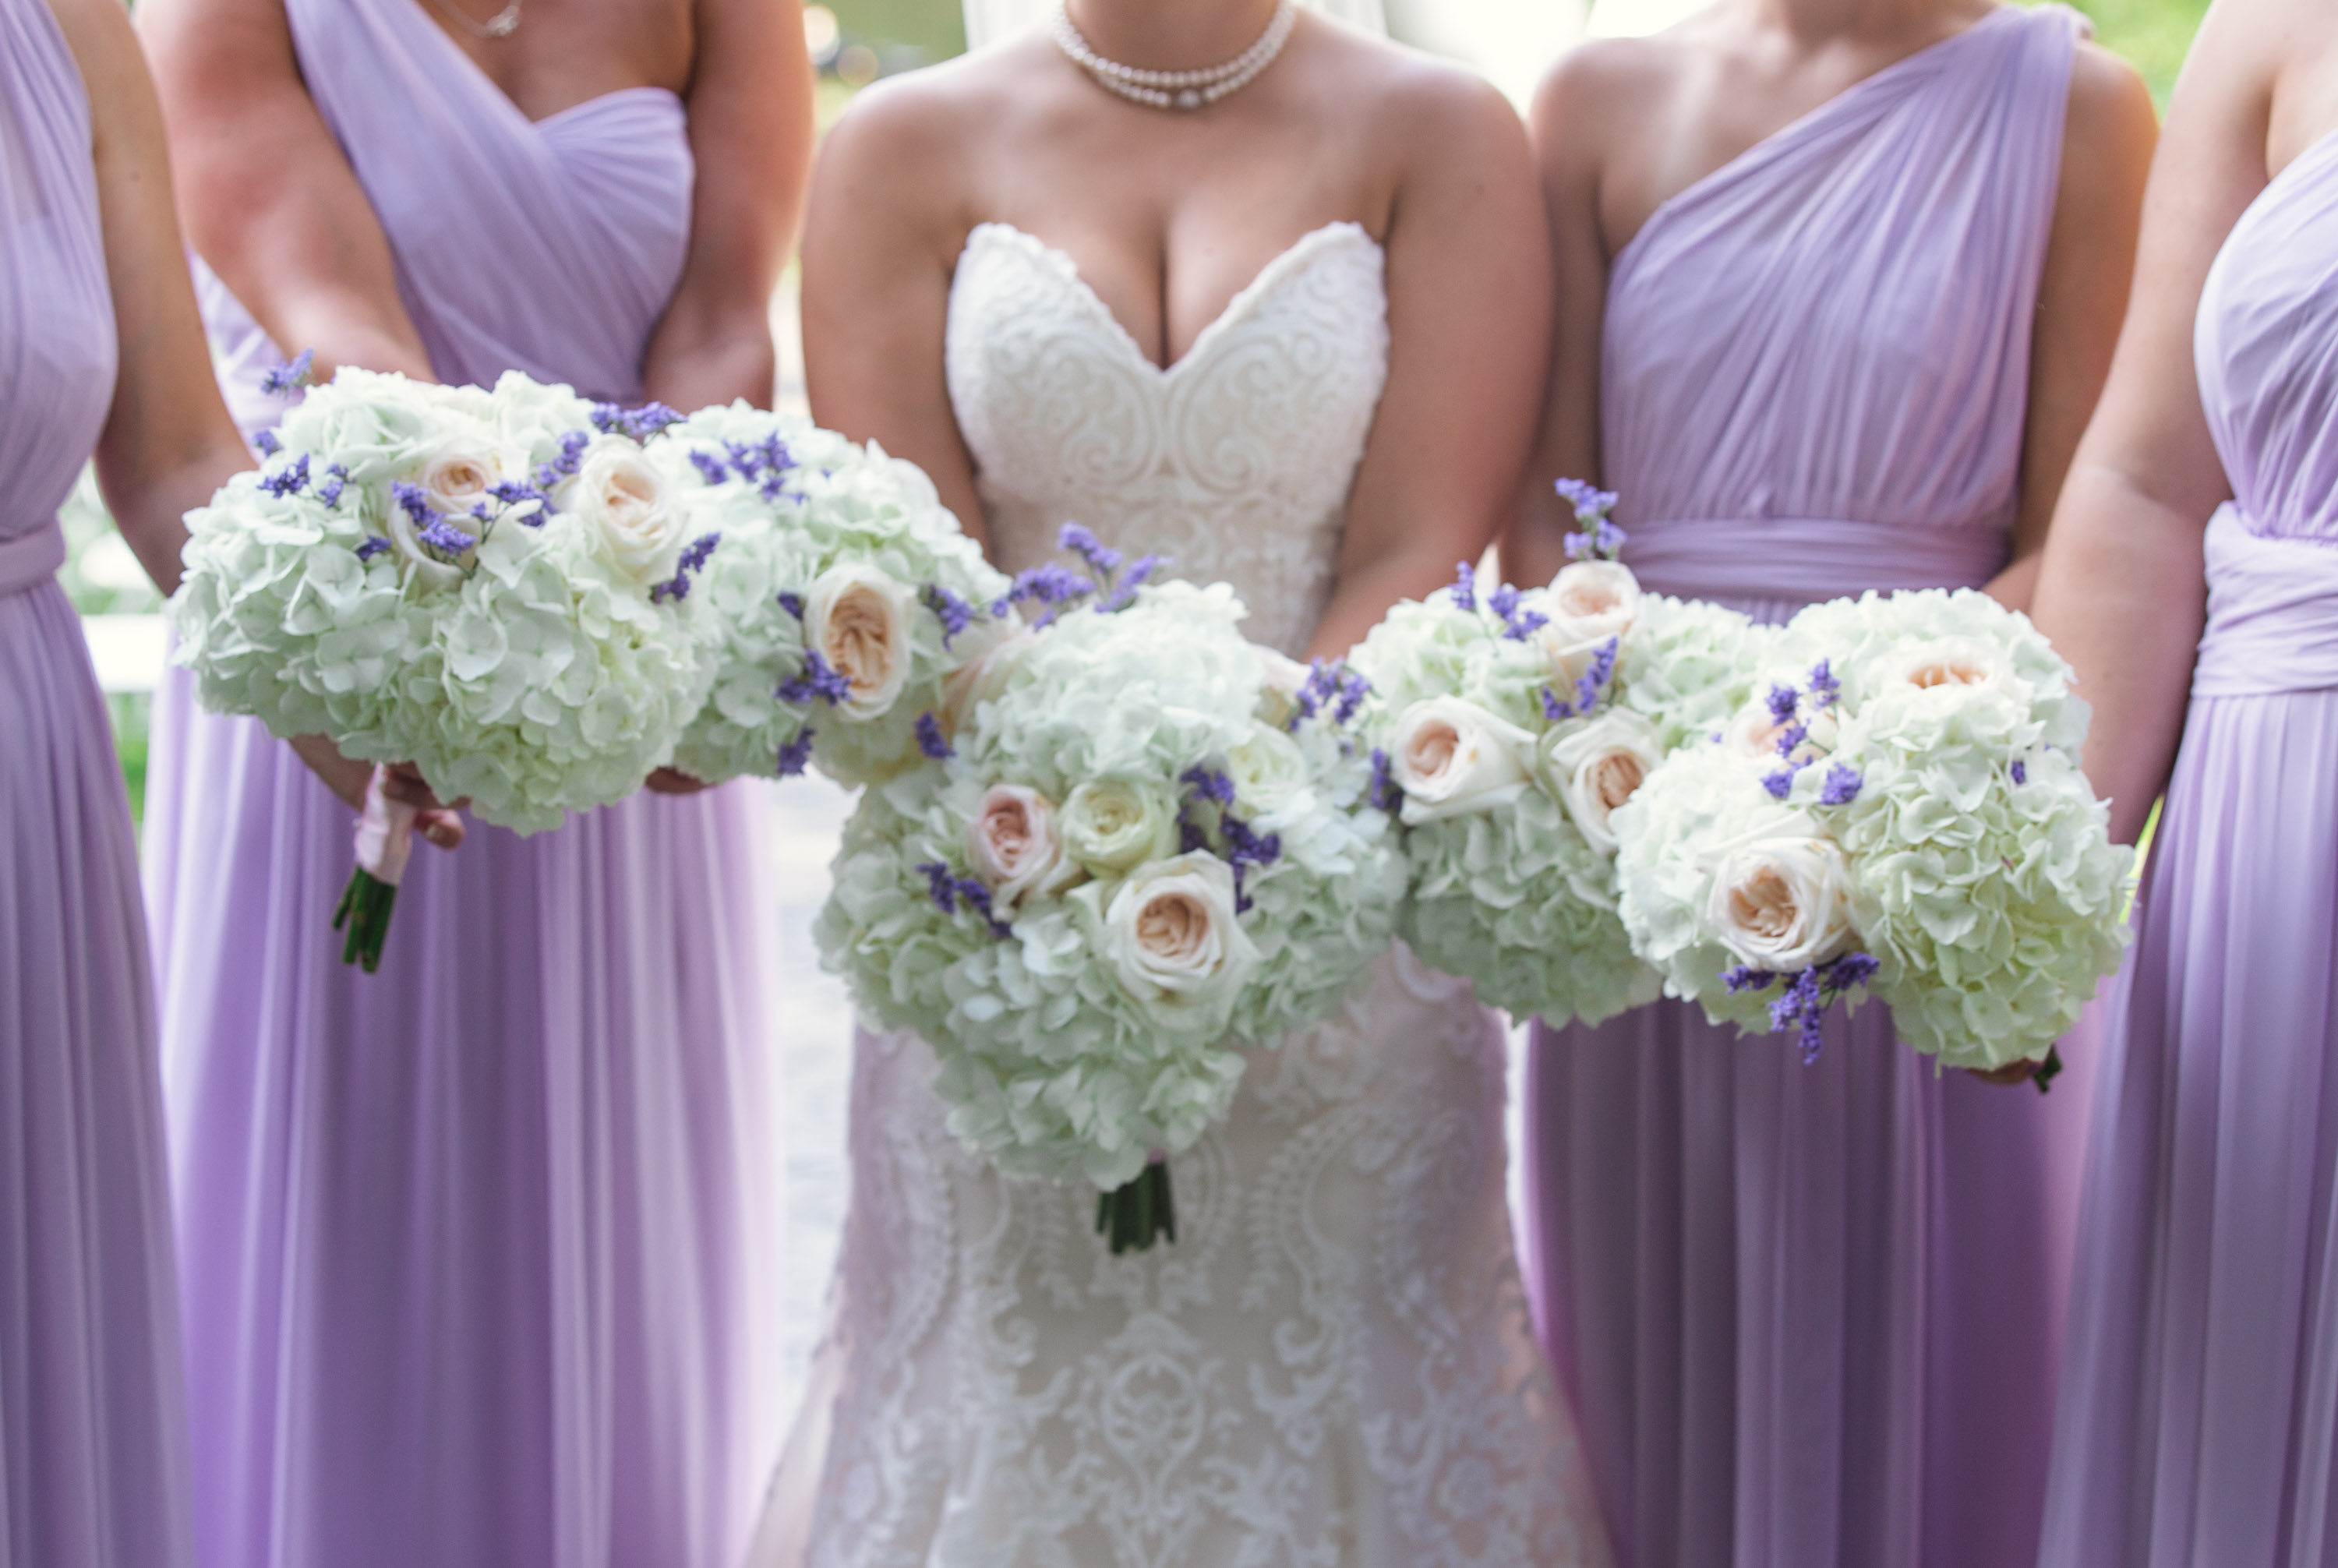 lilac-grey-outdoor-jewish-wedding-johannadye-photography-31